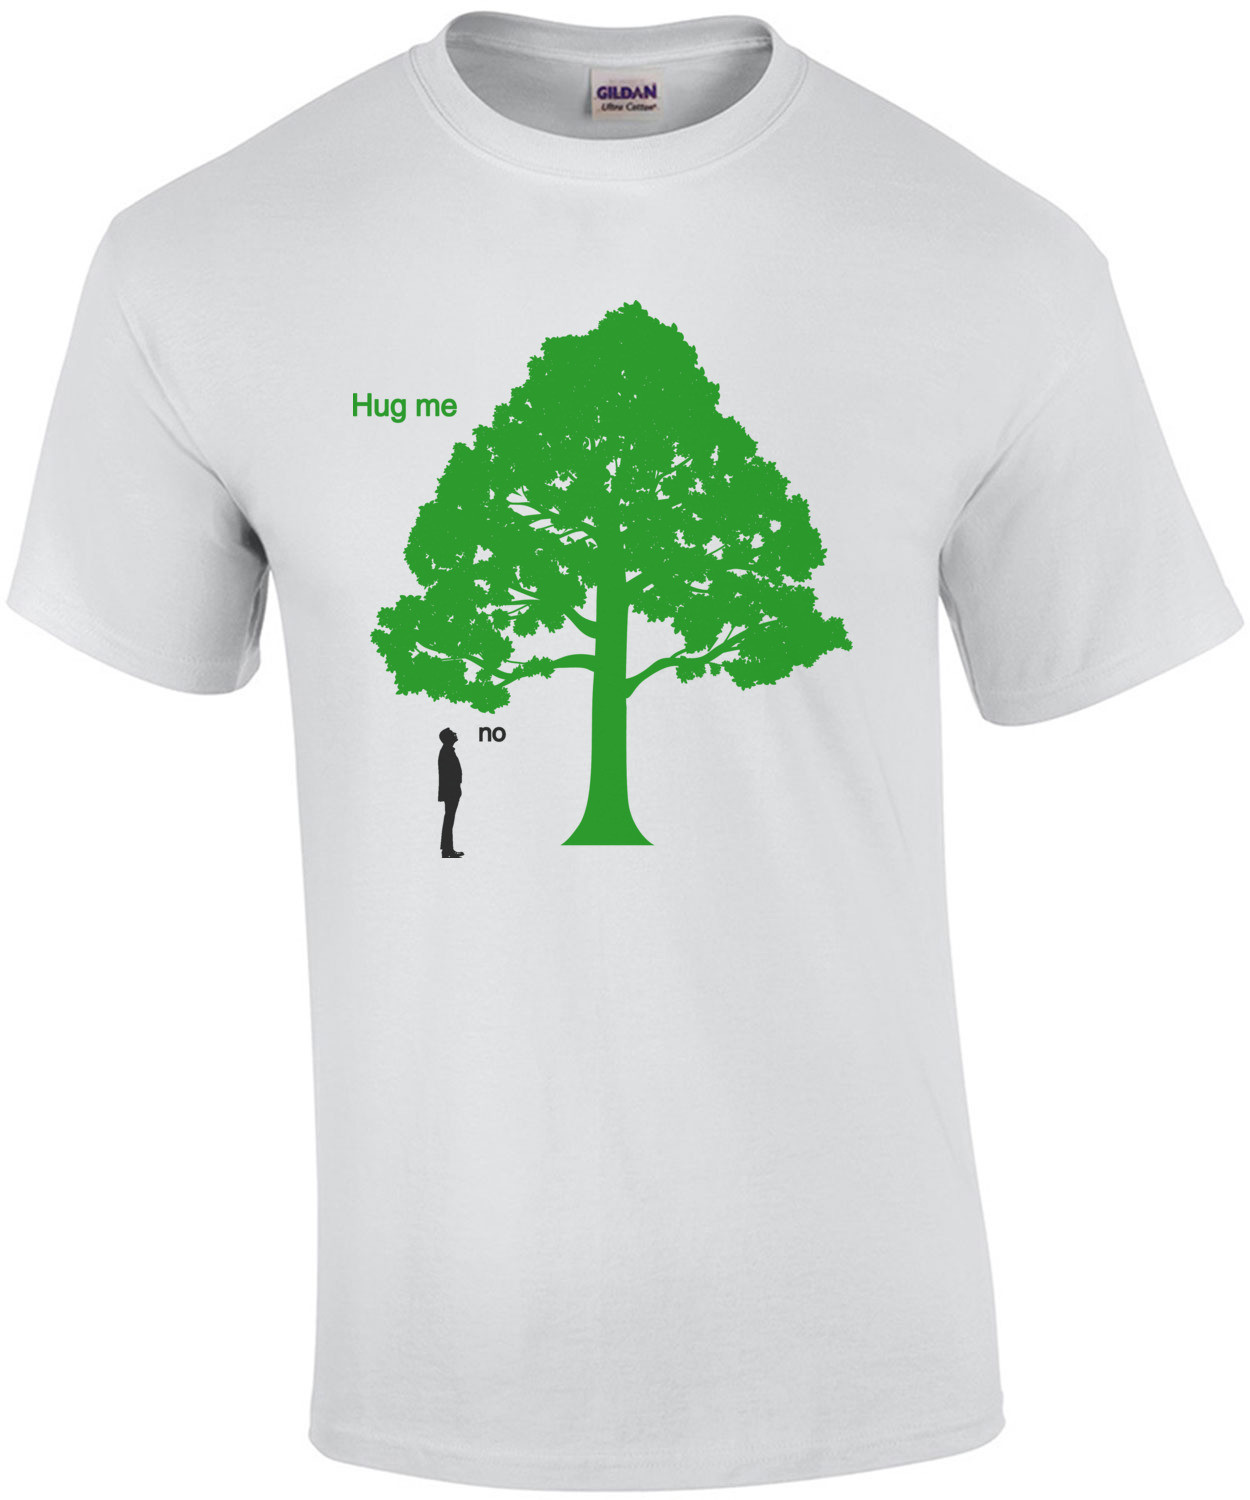 Hug me - No. Anti environmentalist t-shirt